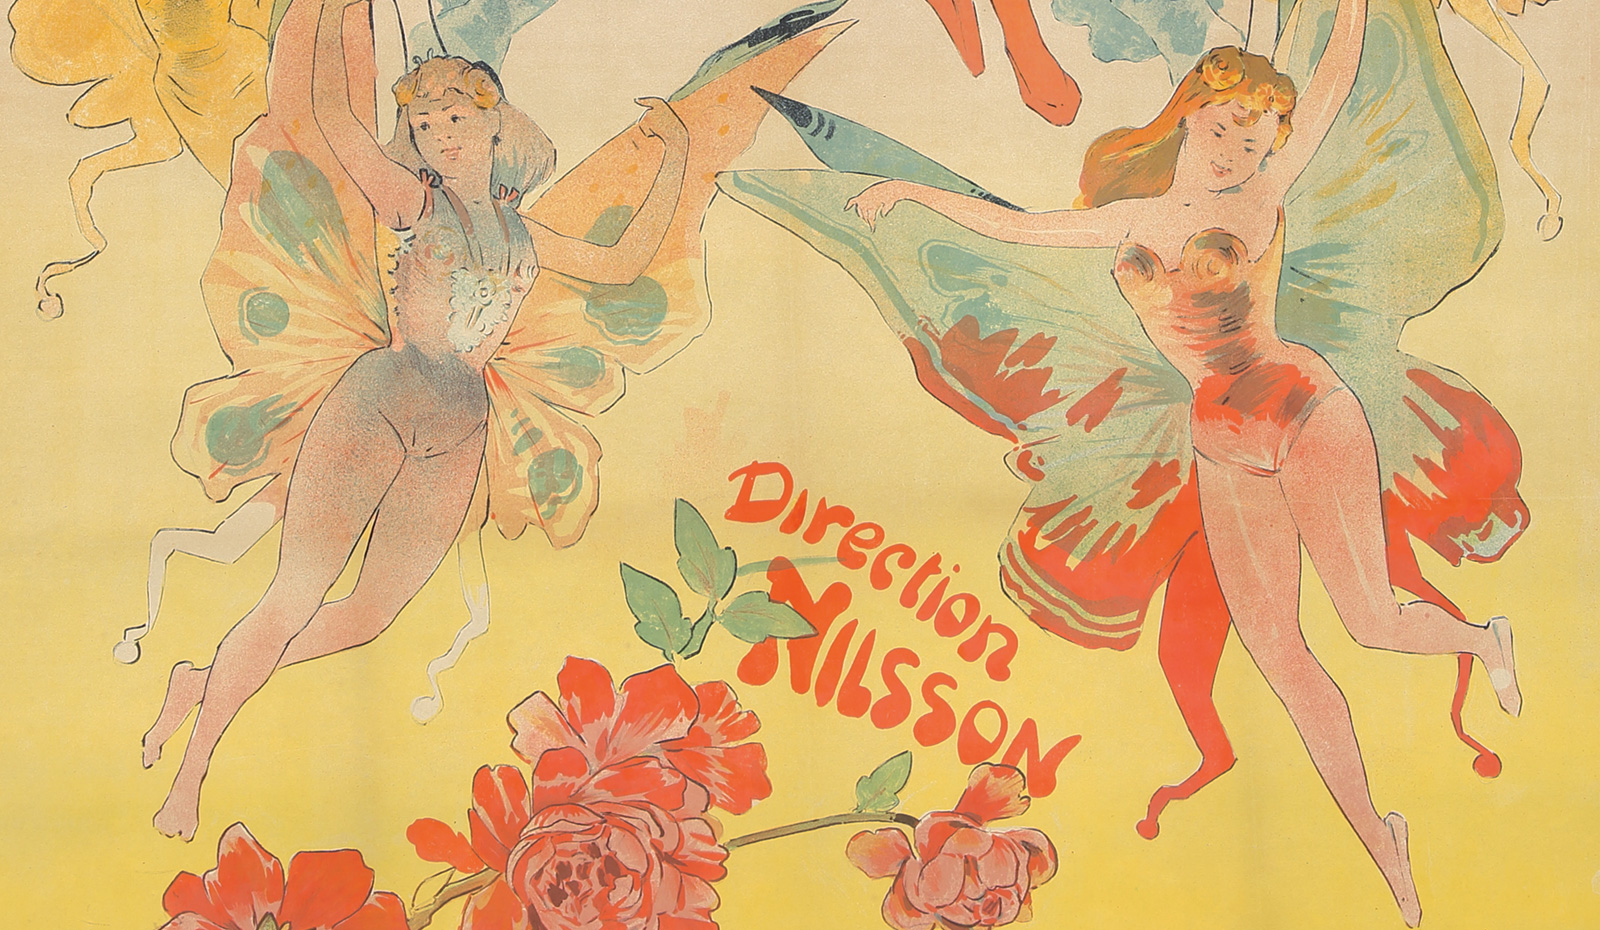 Harry Nilsson, Aerial Ballet, And The Dance Of Time